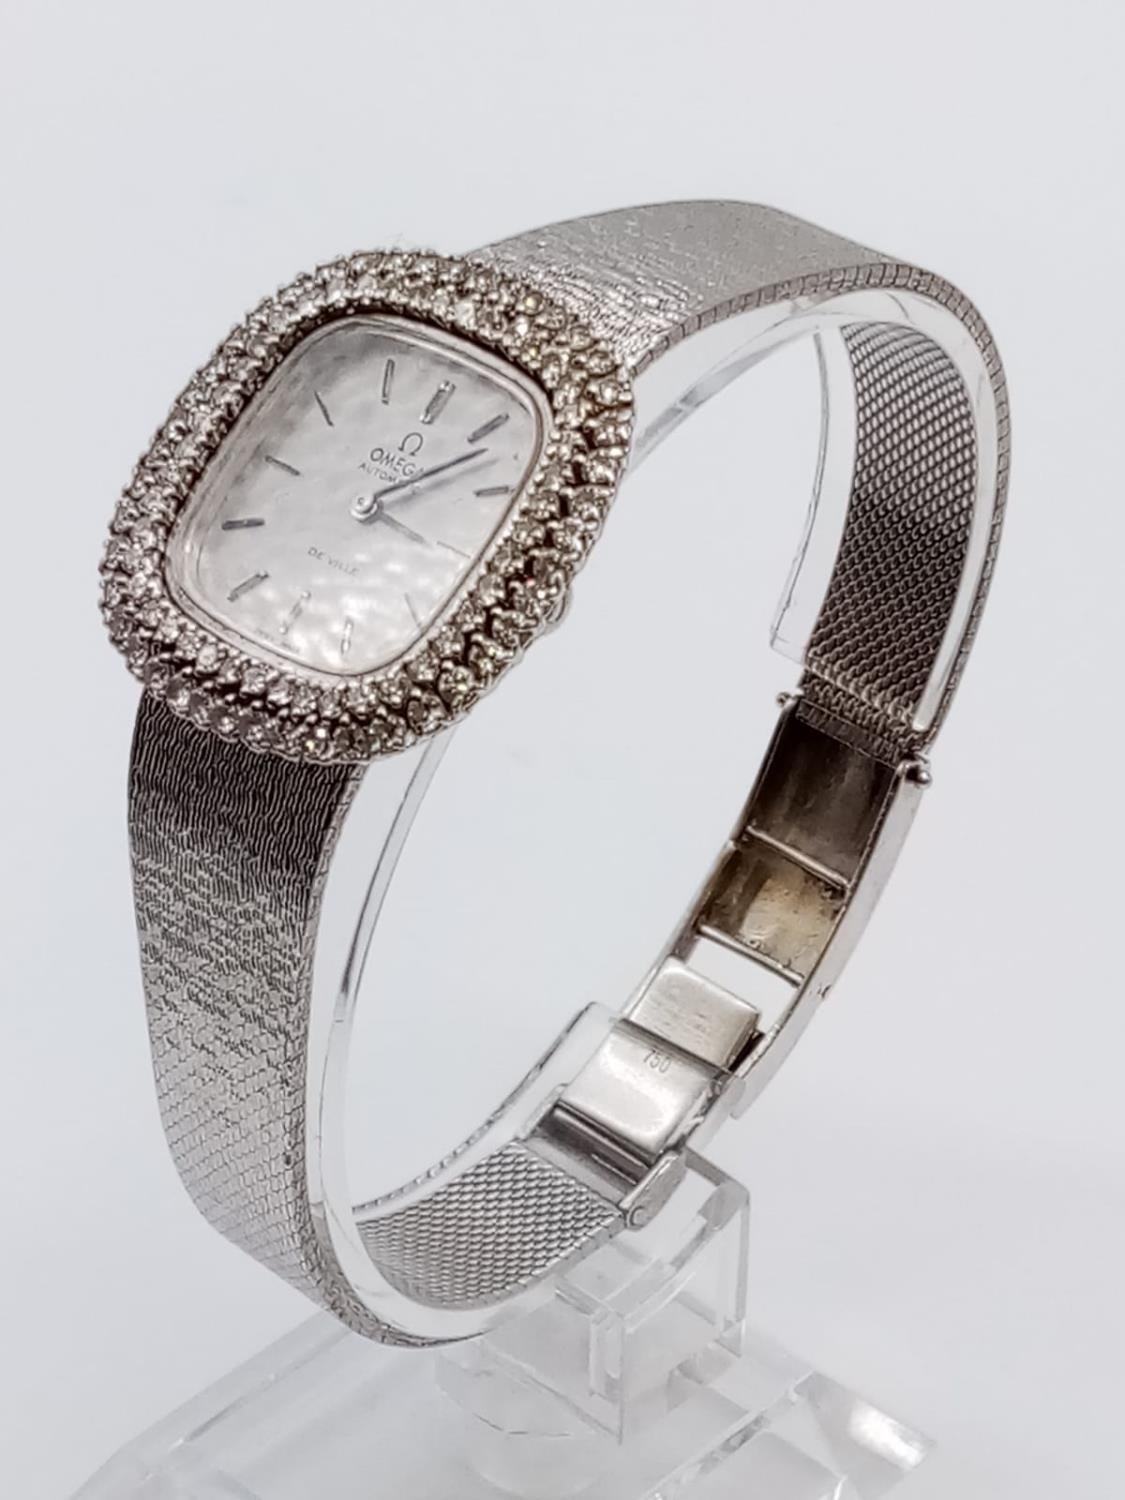 Vintage 18ct white gold OMEGA de Ville ladies automatic watch, square face with diamond encrusted - Image 3 of 7